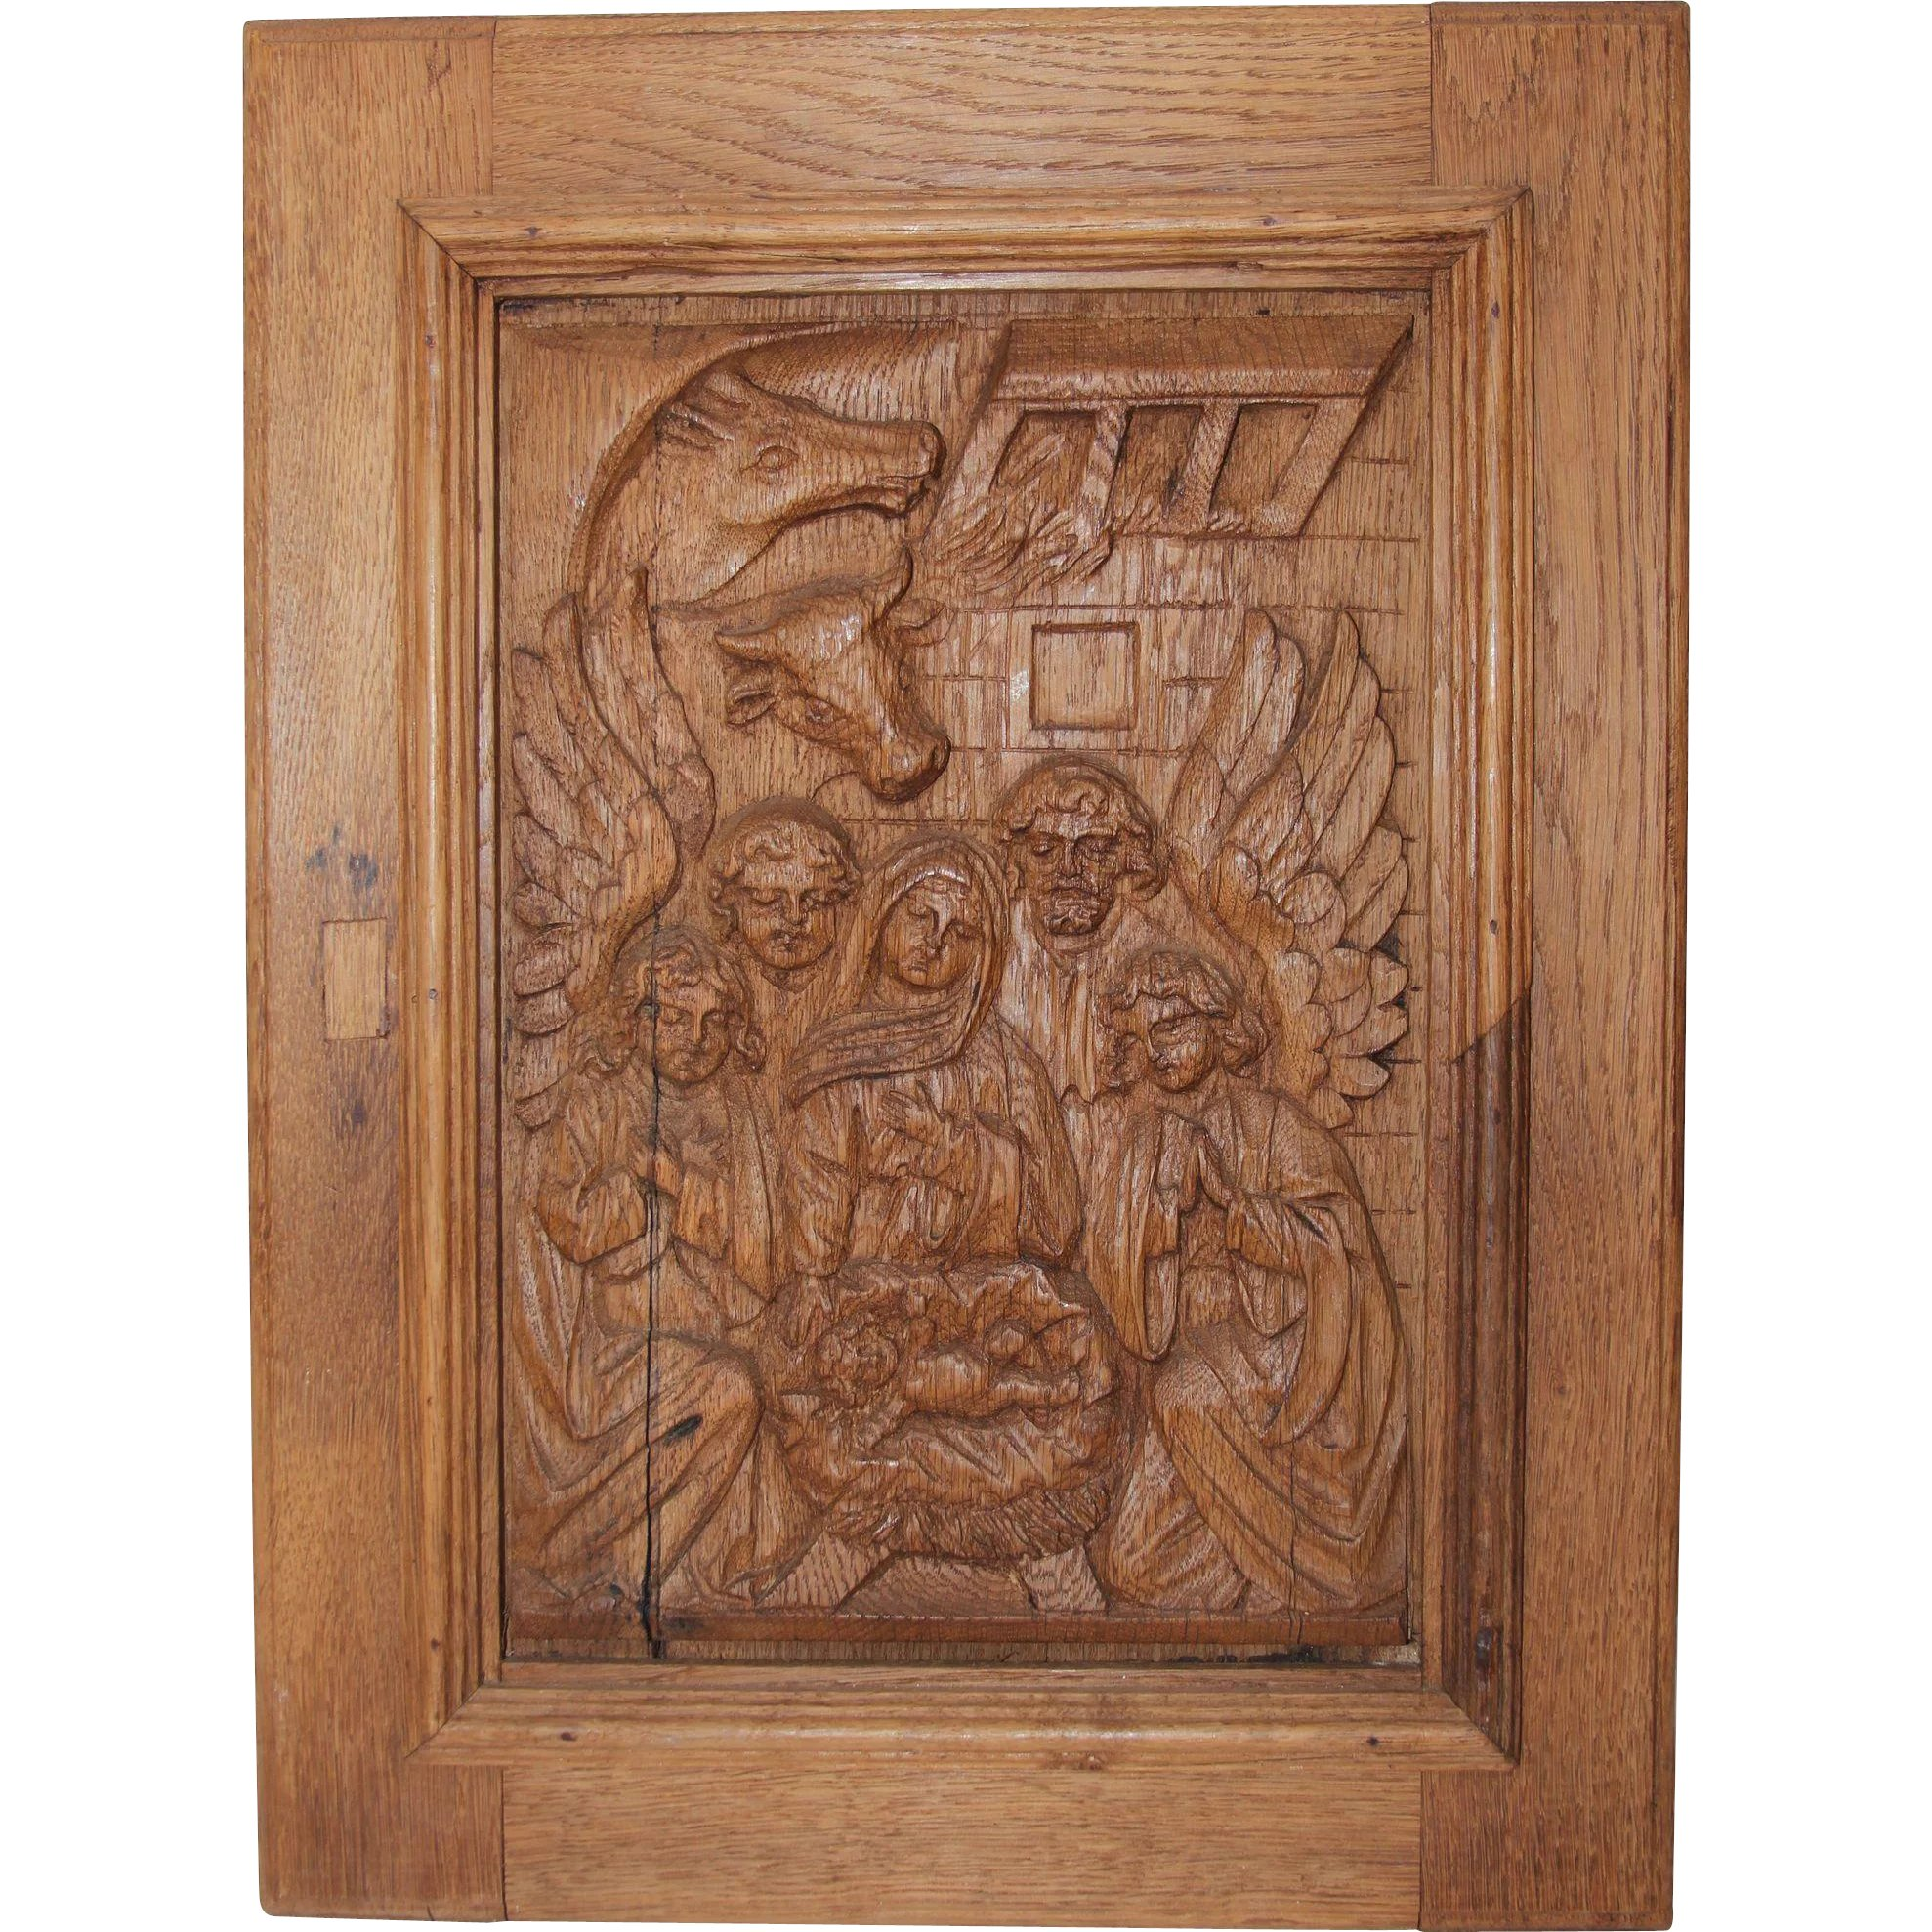 18th Century Nativity Scene Wood Carved Depiction Of The